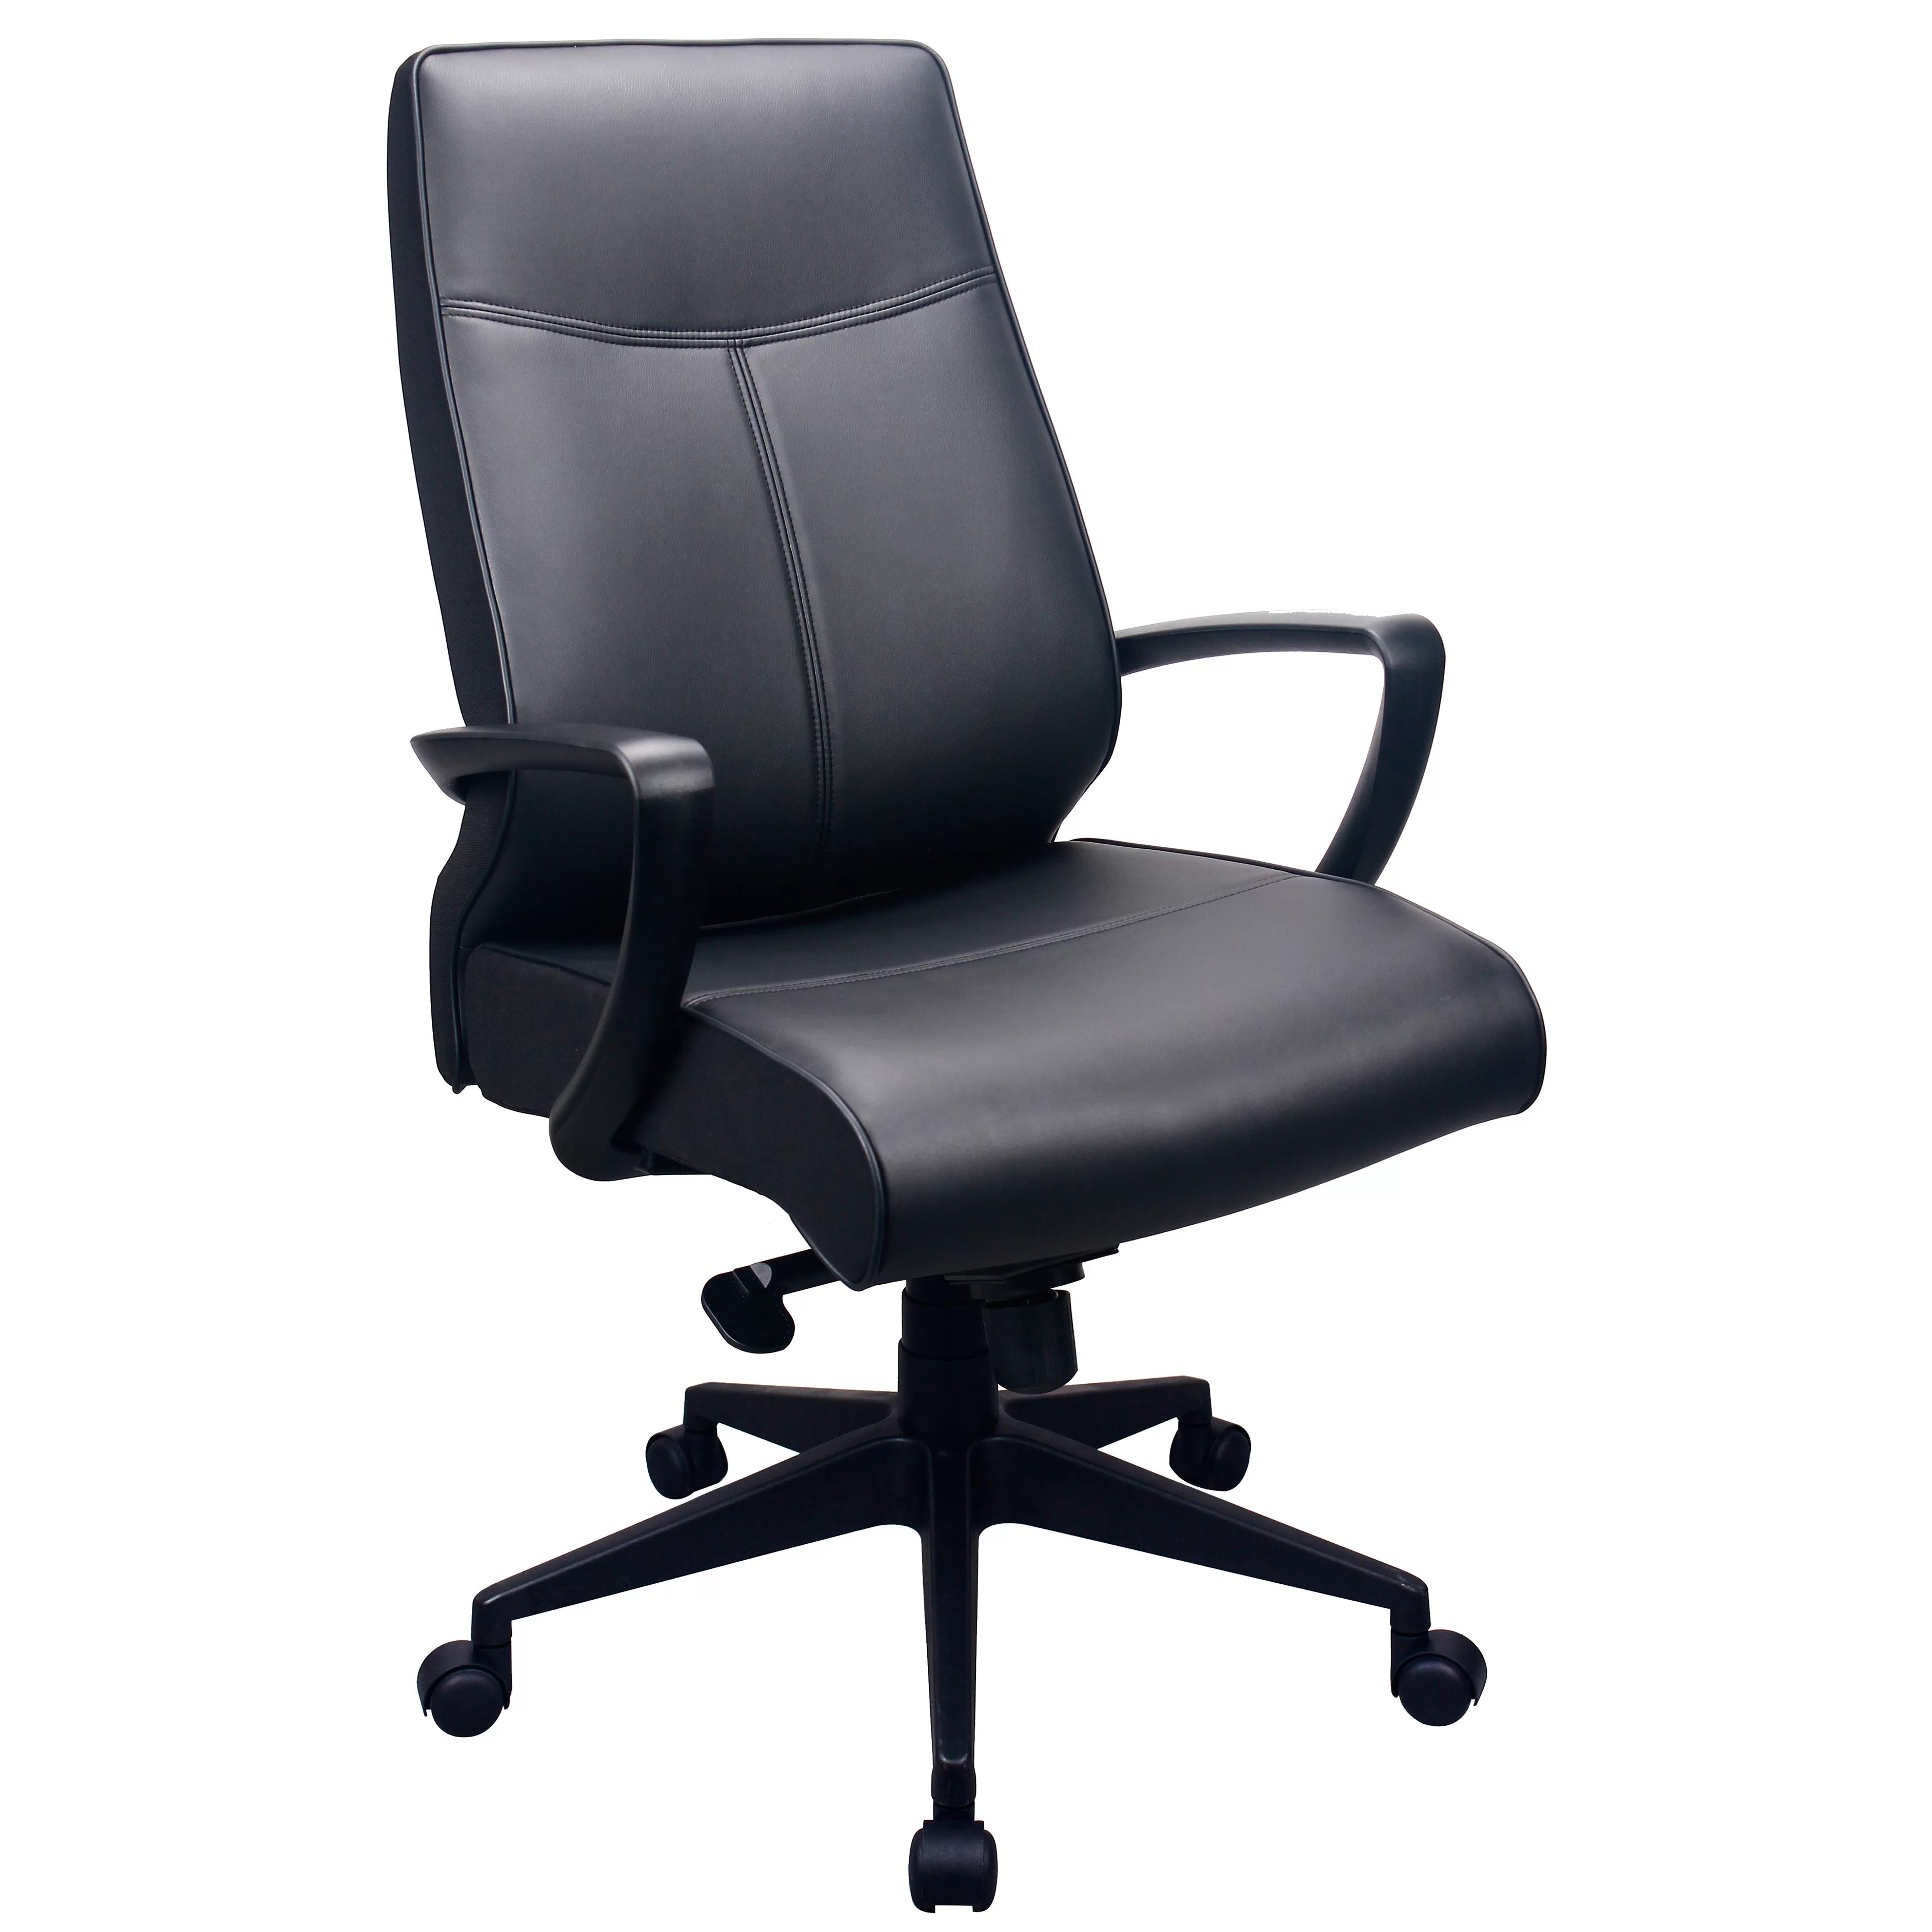 Tempur Pedic Office Chair Tempur Pedic High Back Leather Executive Office Chair With